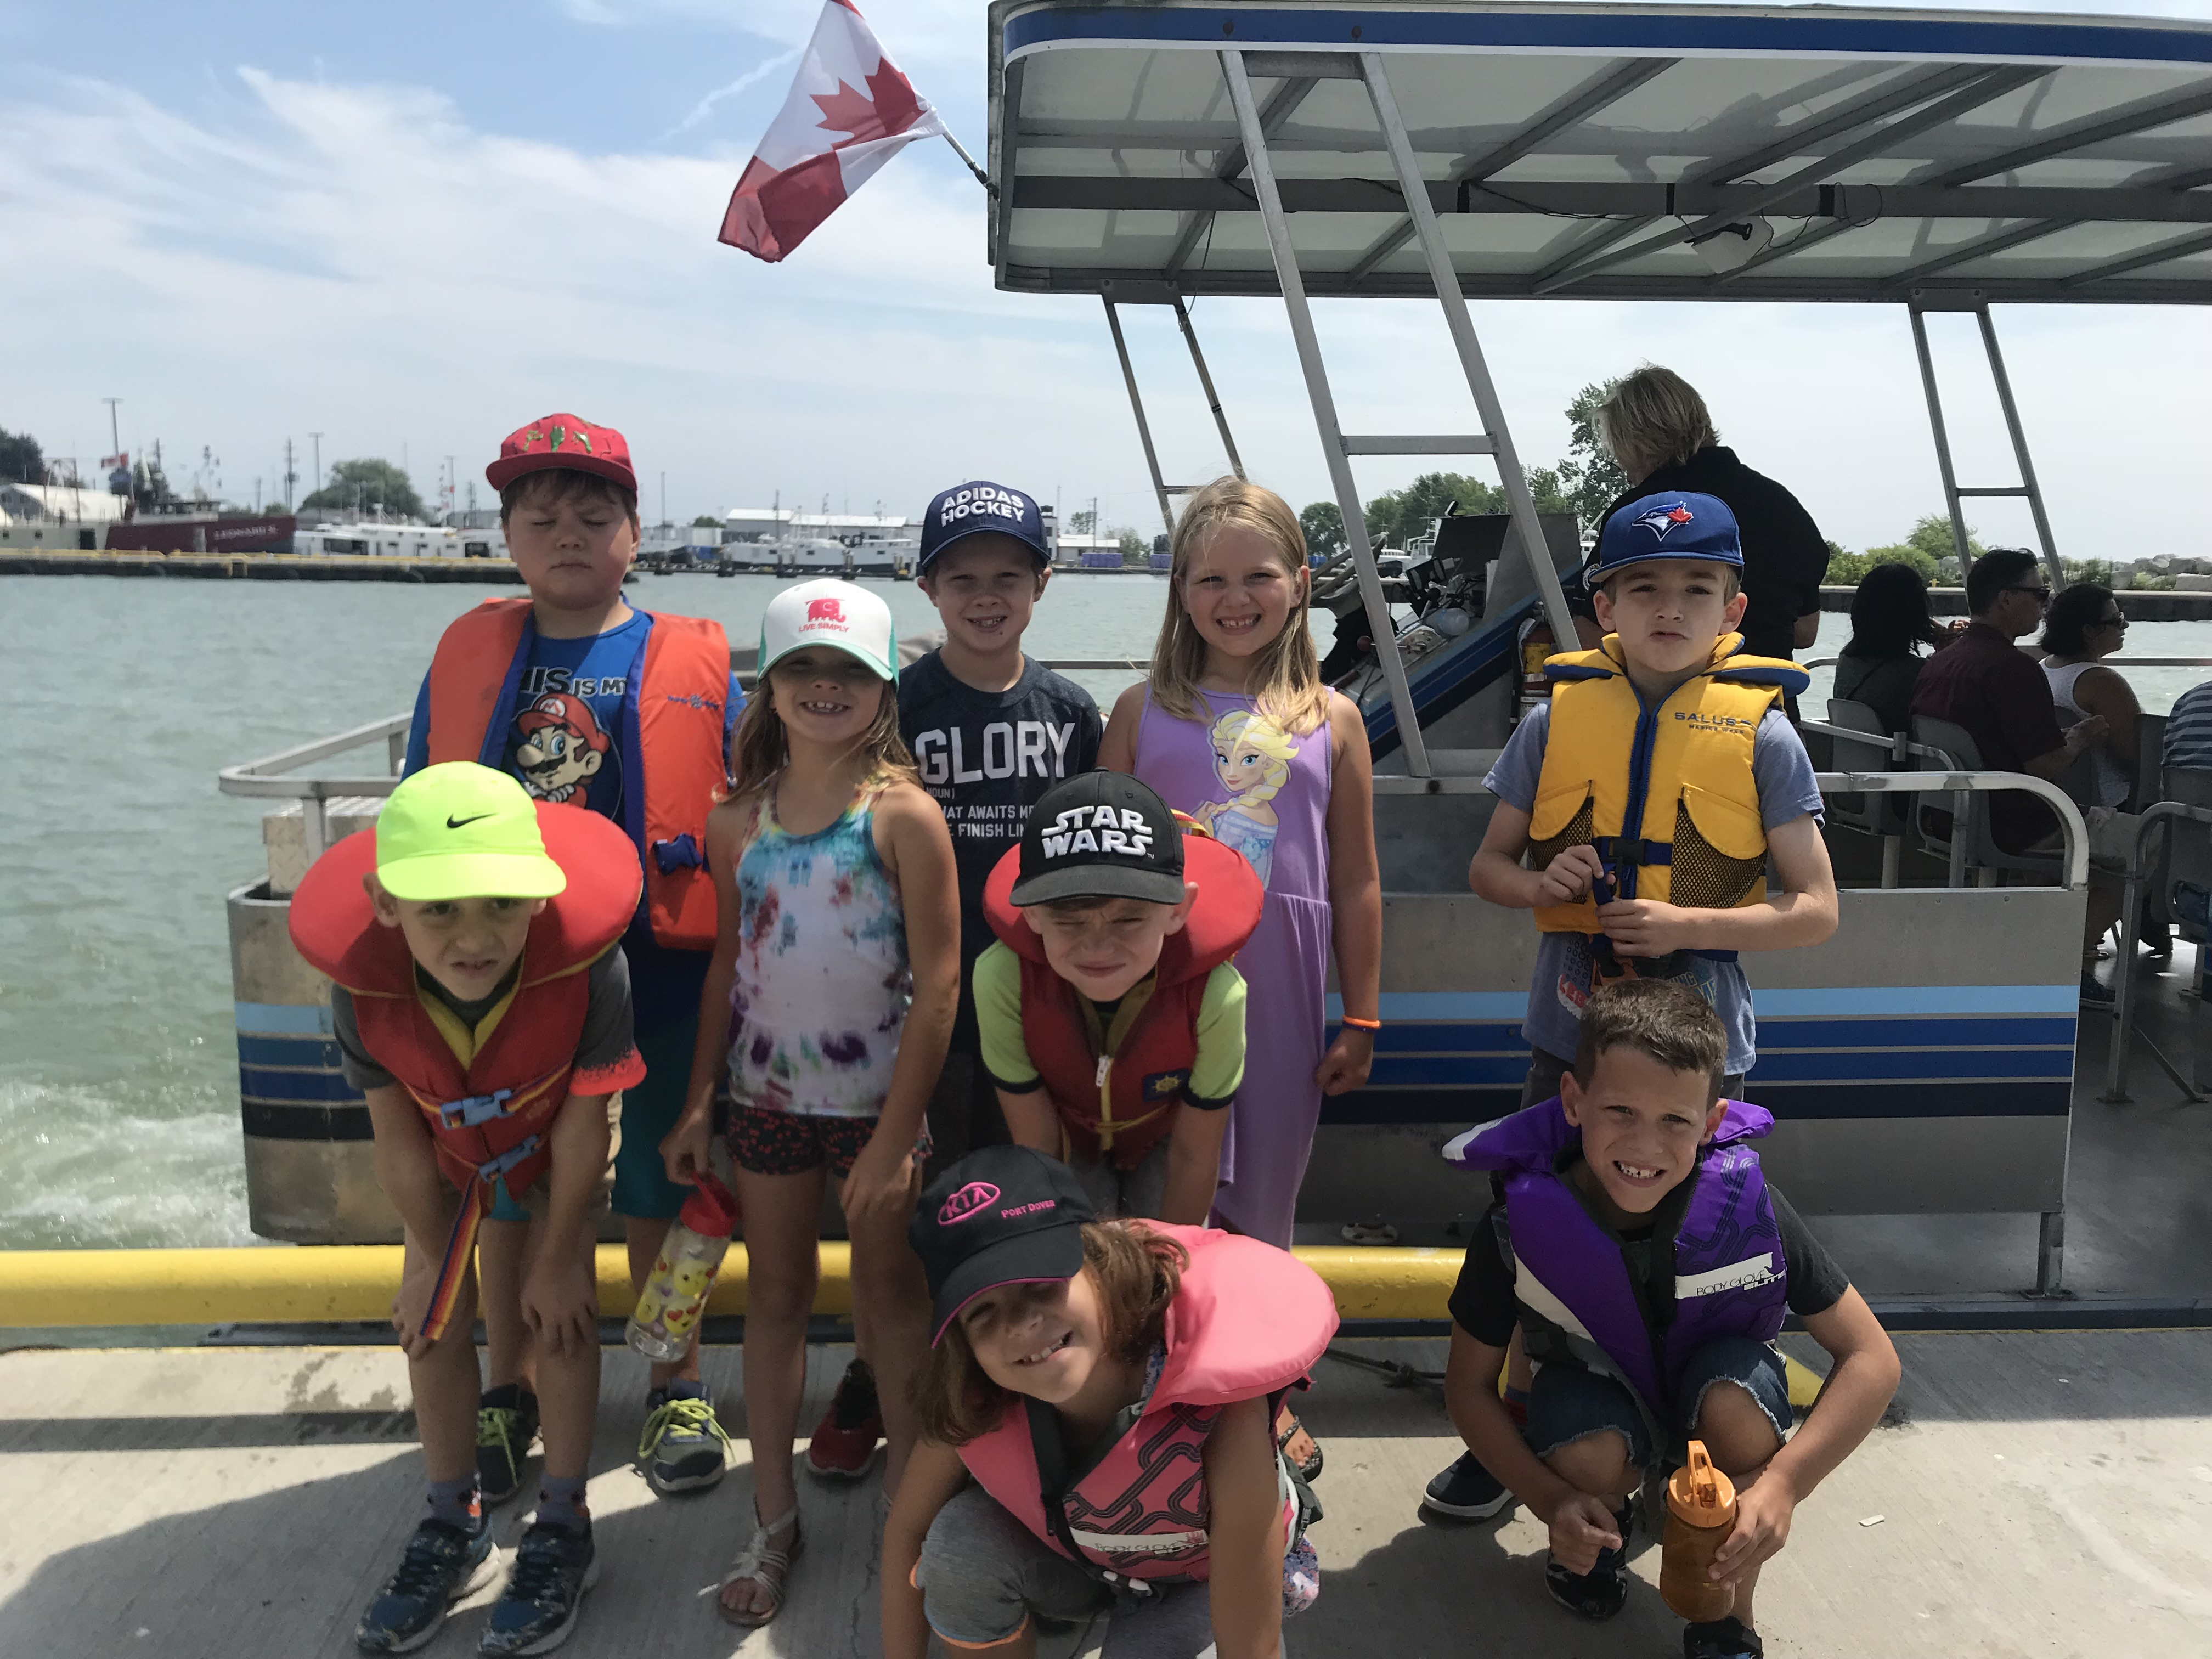 Children getting ready to board the River Rider